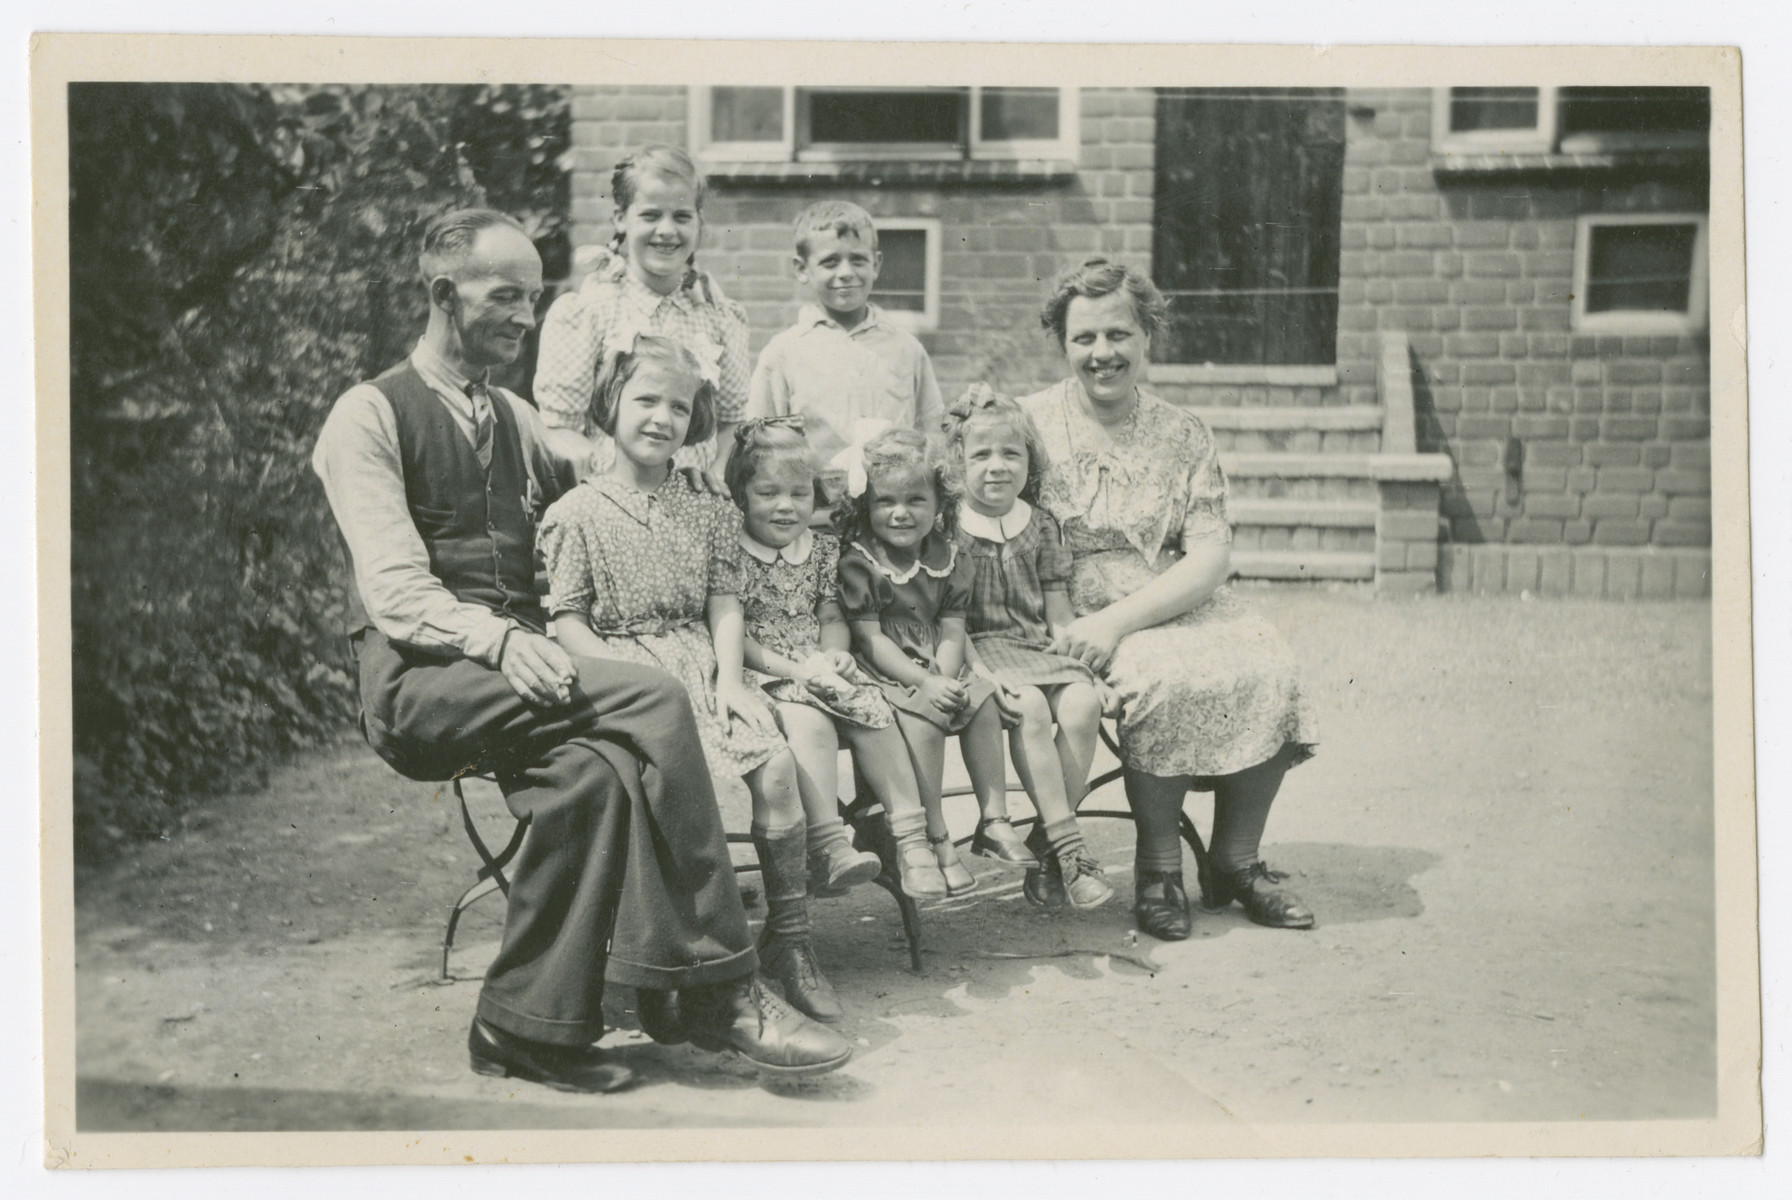 Ineke Baars (front center) visits the family of Cor van Doorn, a Dutch official who assisted Frans Wijnakker's rescue effort.